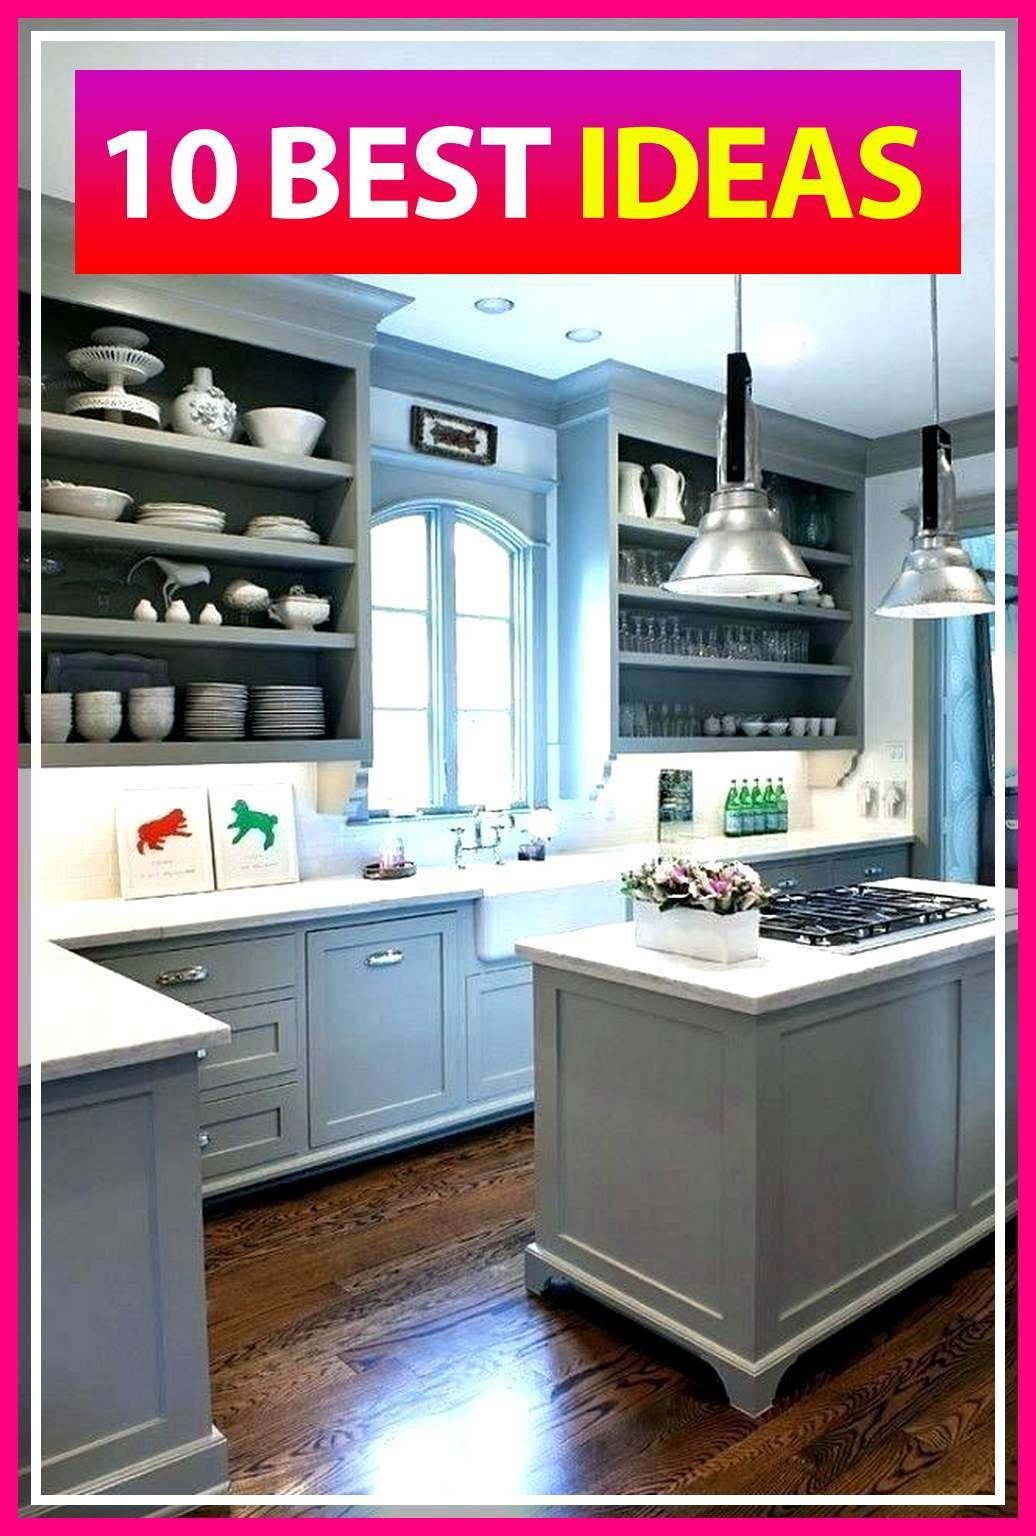 10 Marvelous Best Kitchen Cabinet Paint Colors Grey Online #graykitchencabinets